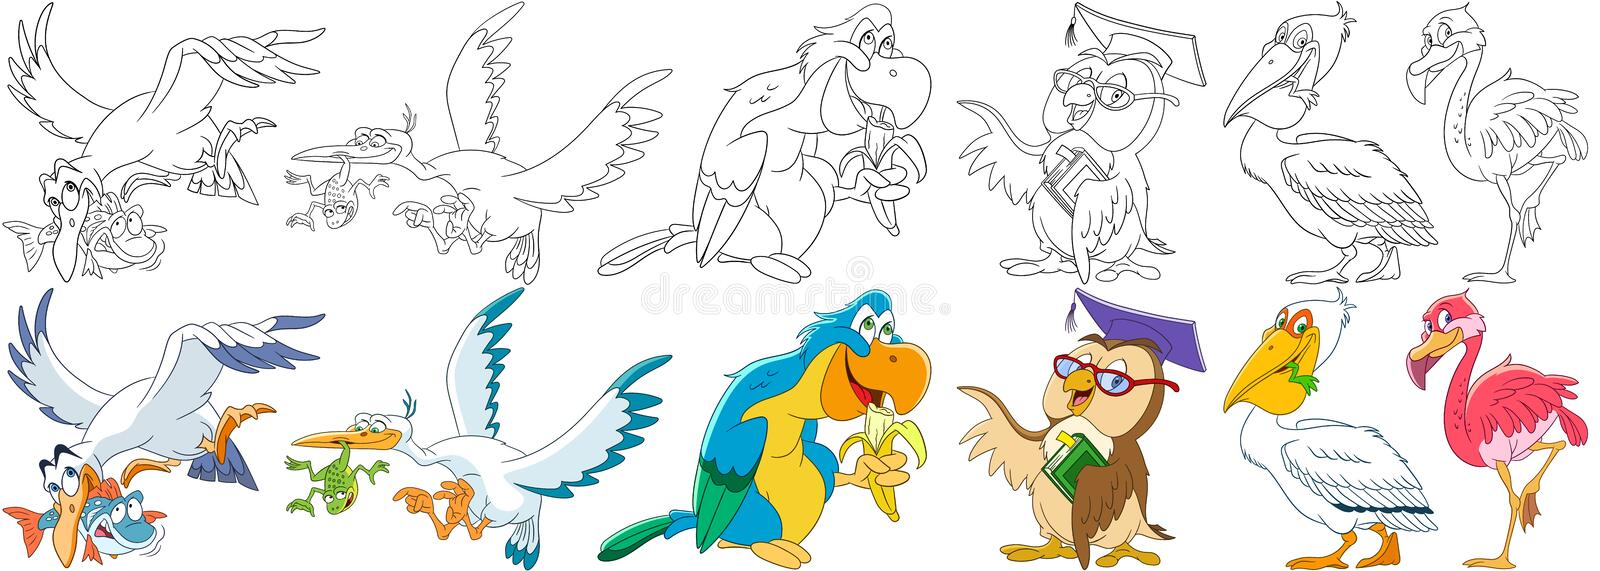 Cartoon birds set royalty free stock images